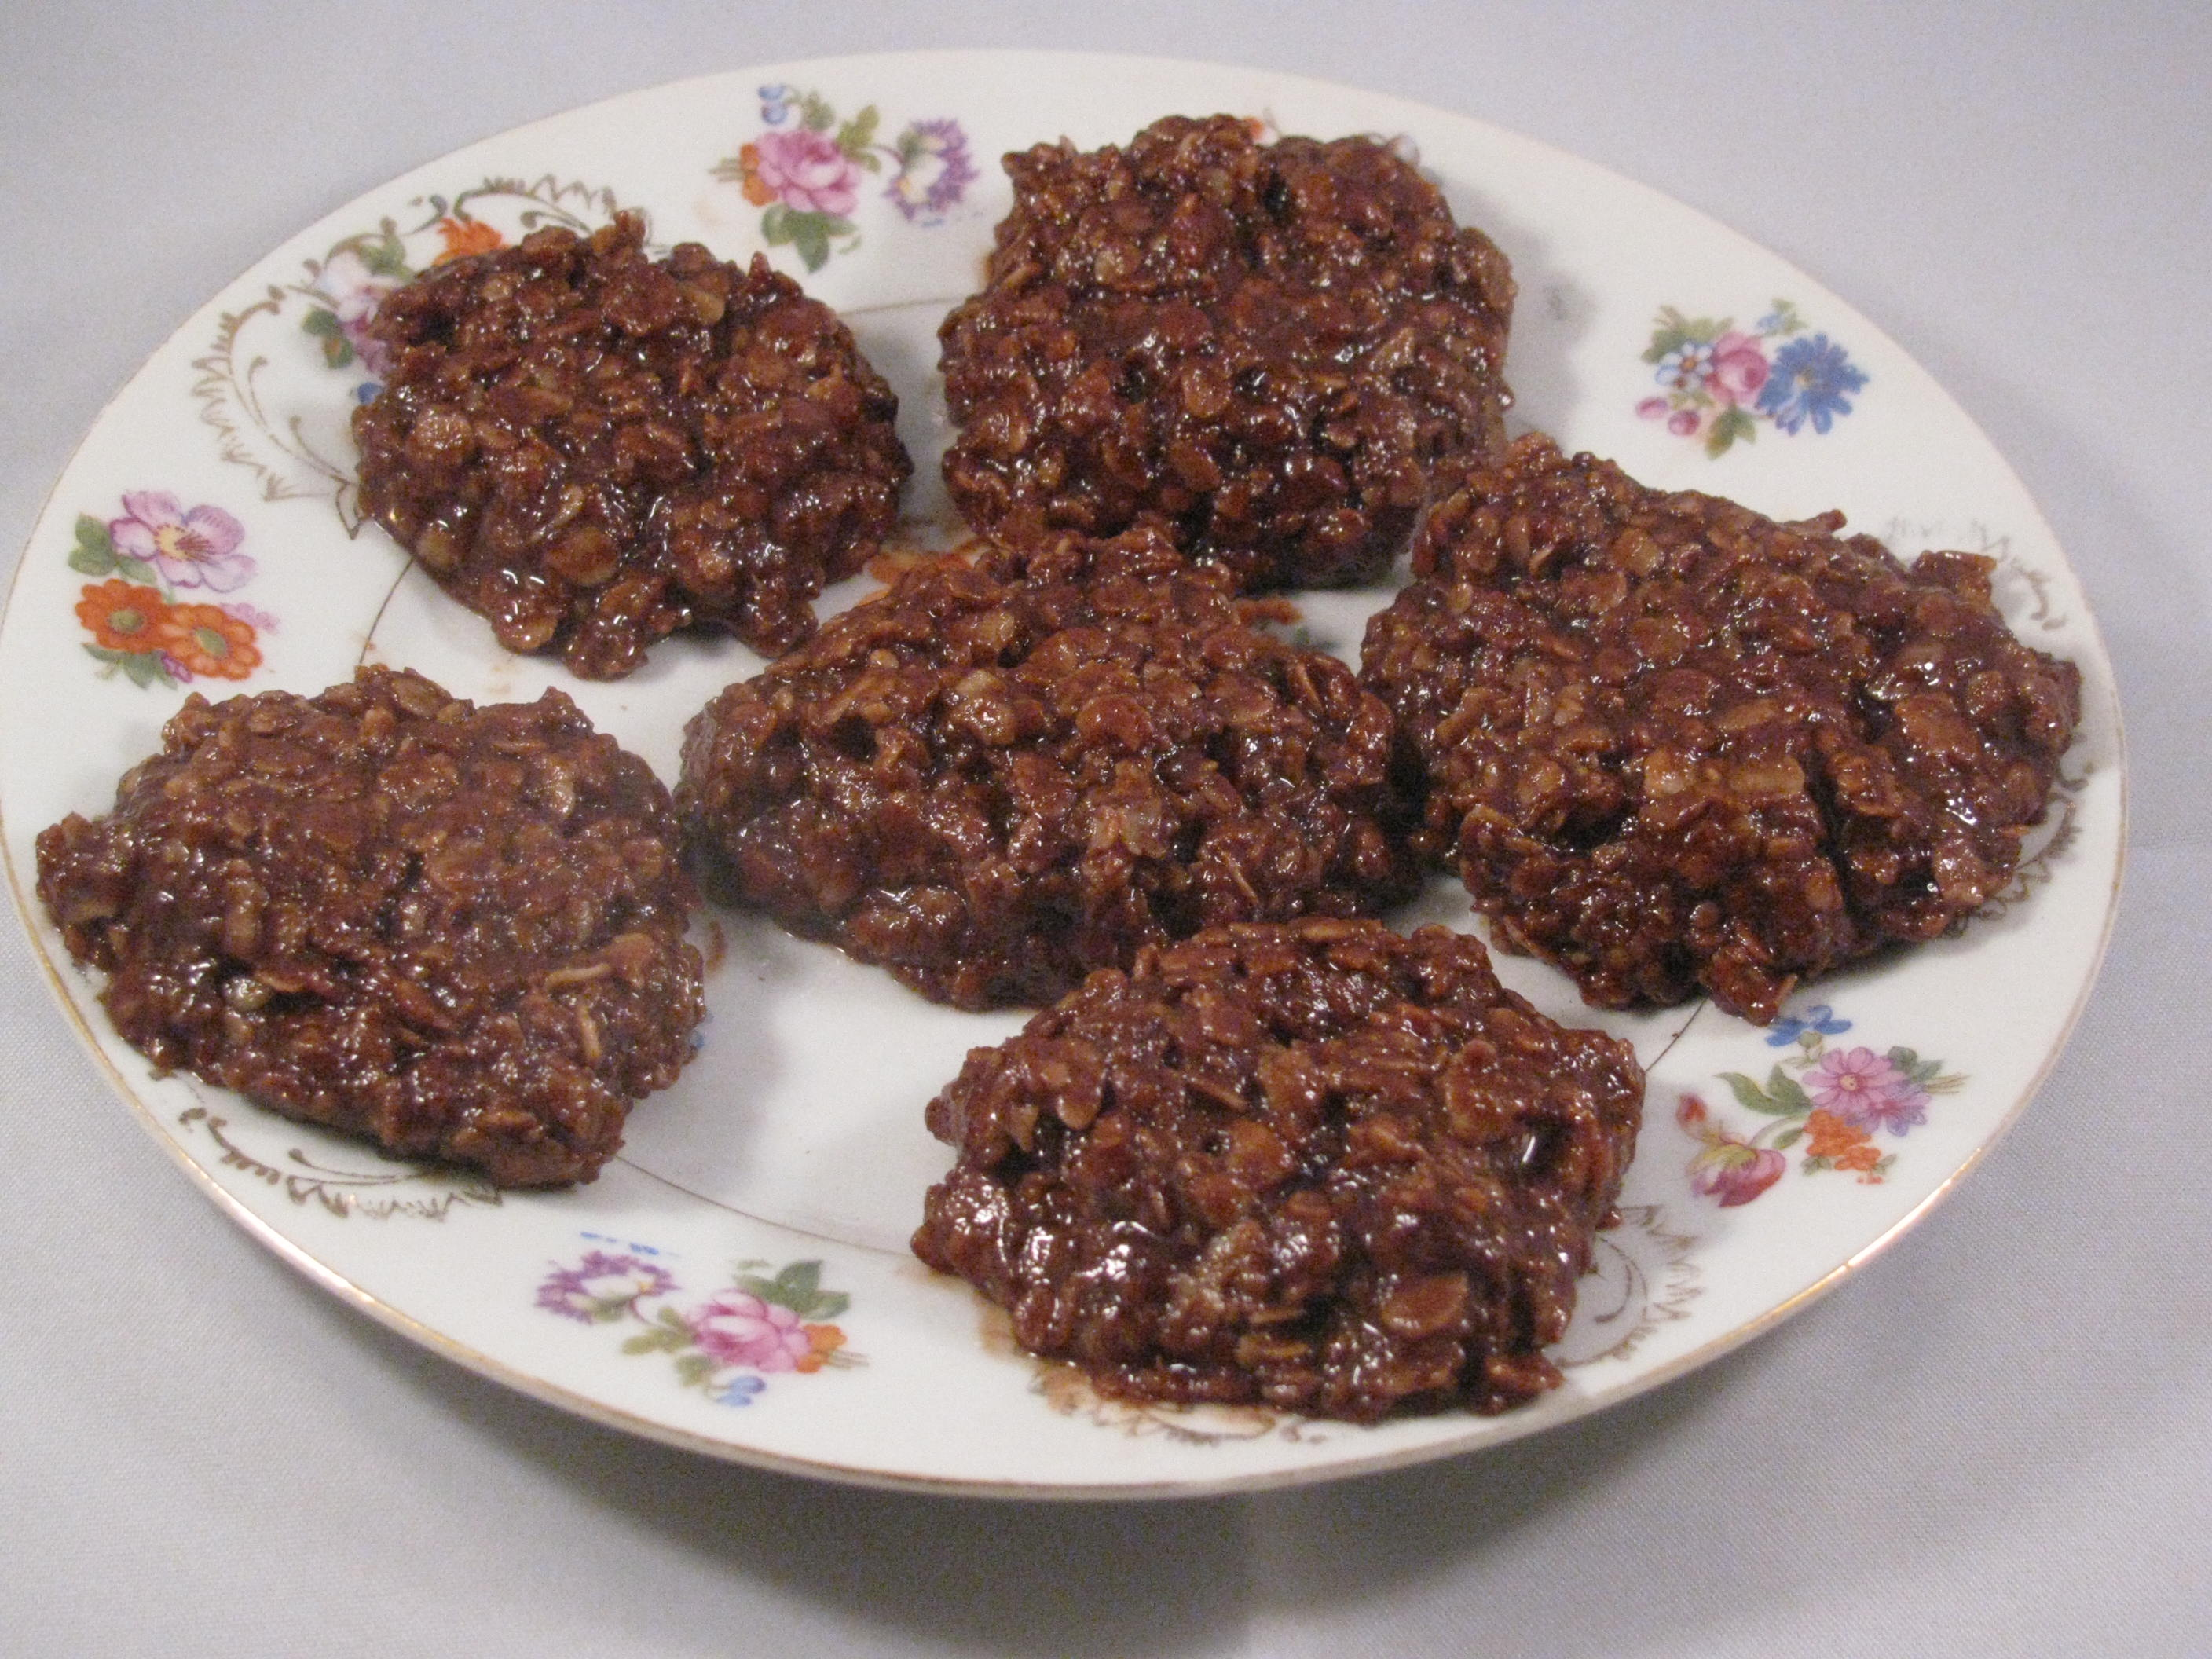 No Bake Cookies, Oatmeal Chocolate Peanut Butter Recipe - My ...